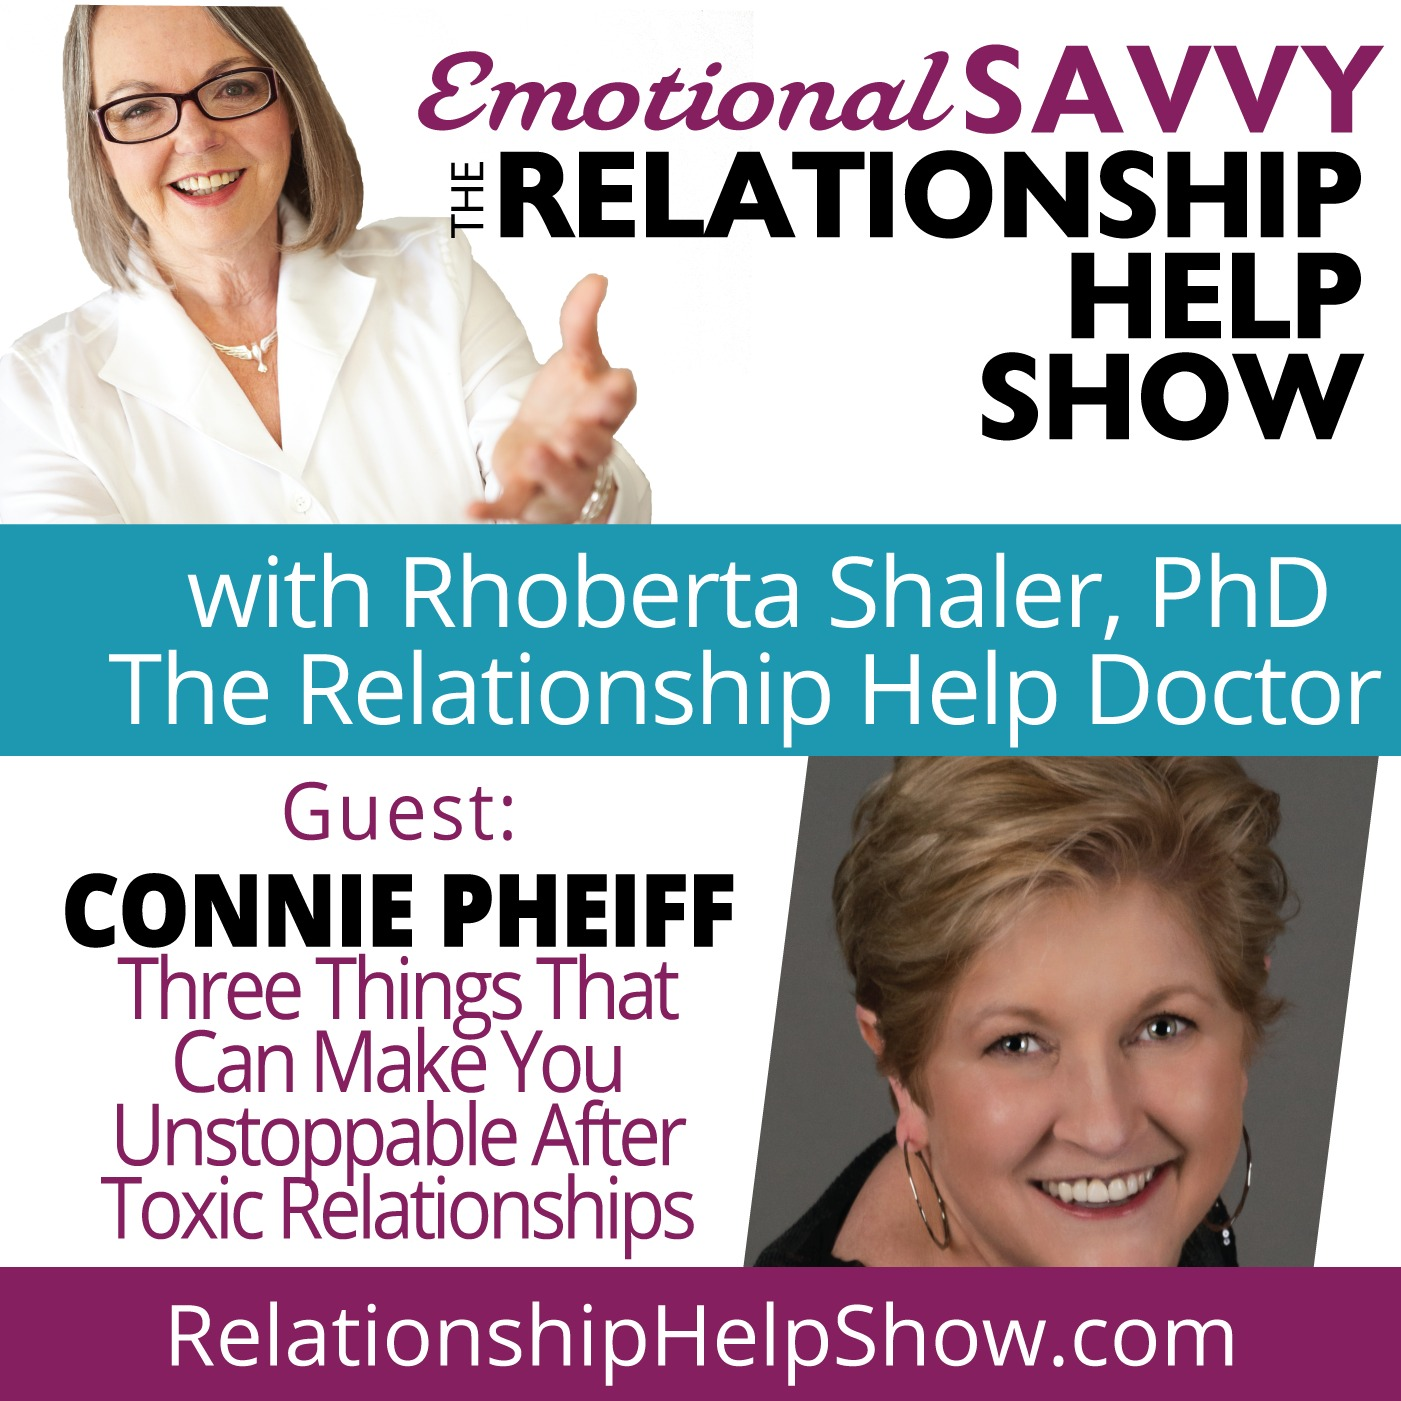 3 Shifts That Can Make You Unstoppable After Toxic Relationships  GUEST: Connie Pheiff